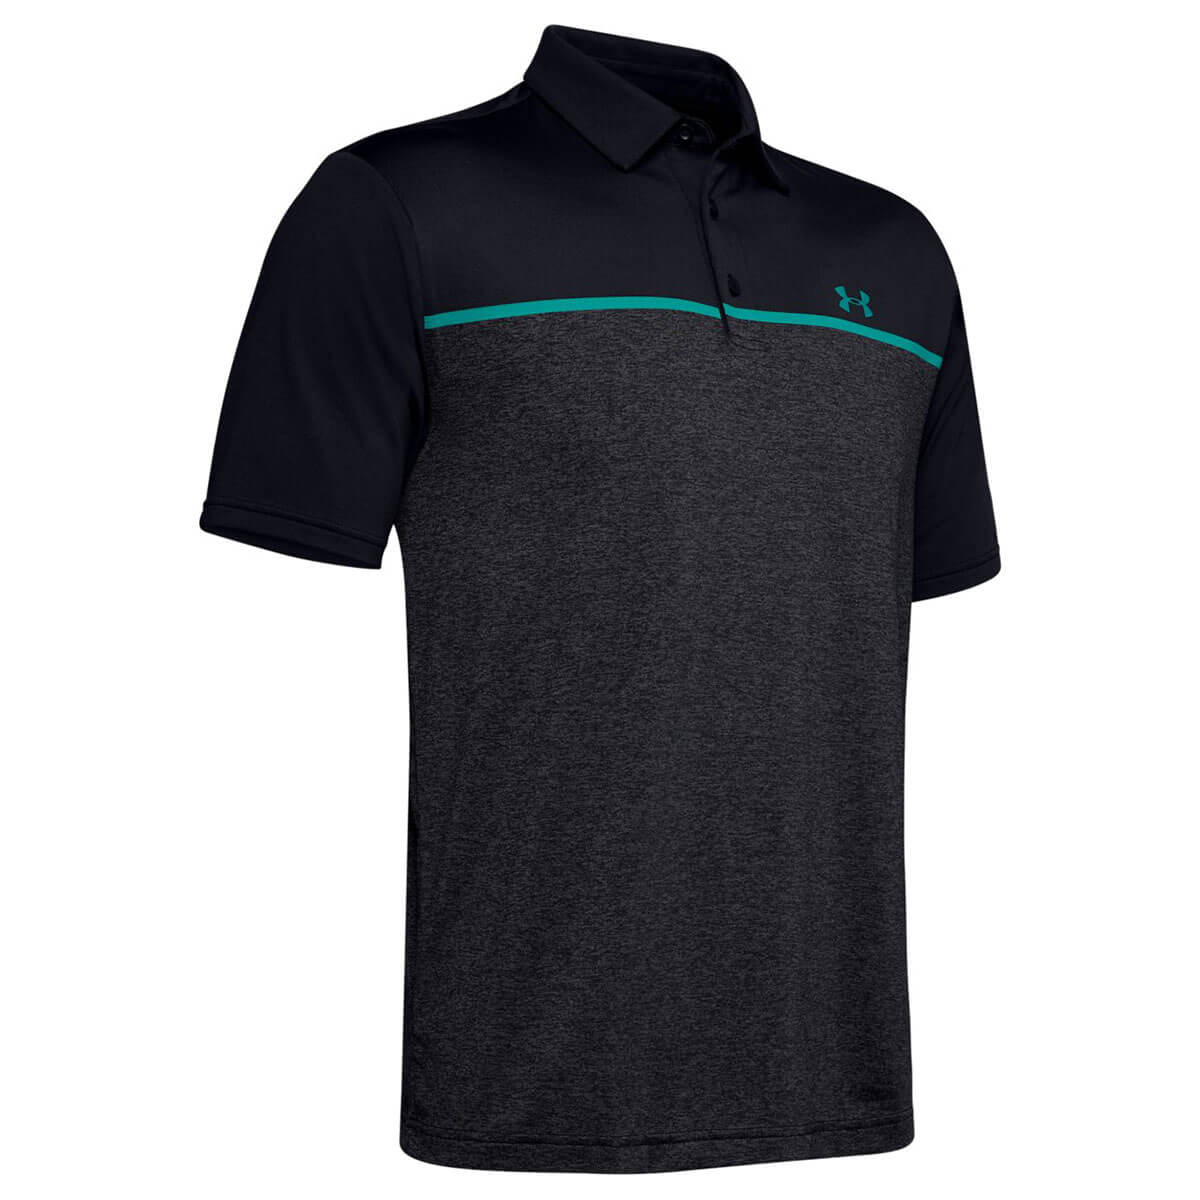 Under-Armour-Mens-2019-Playoff-Polo-2-0-Breathable-Light-Stretch-Polo-Shirt thumbnail 40